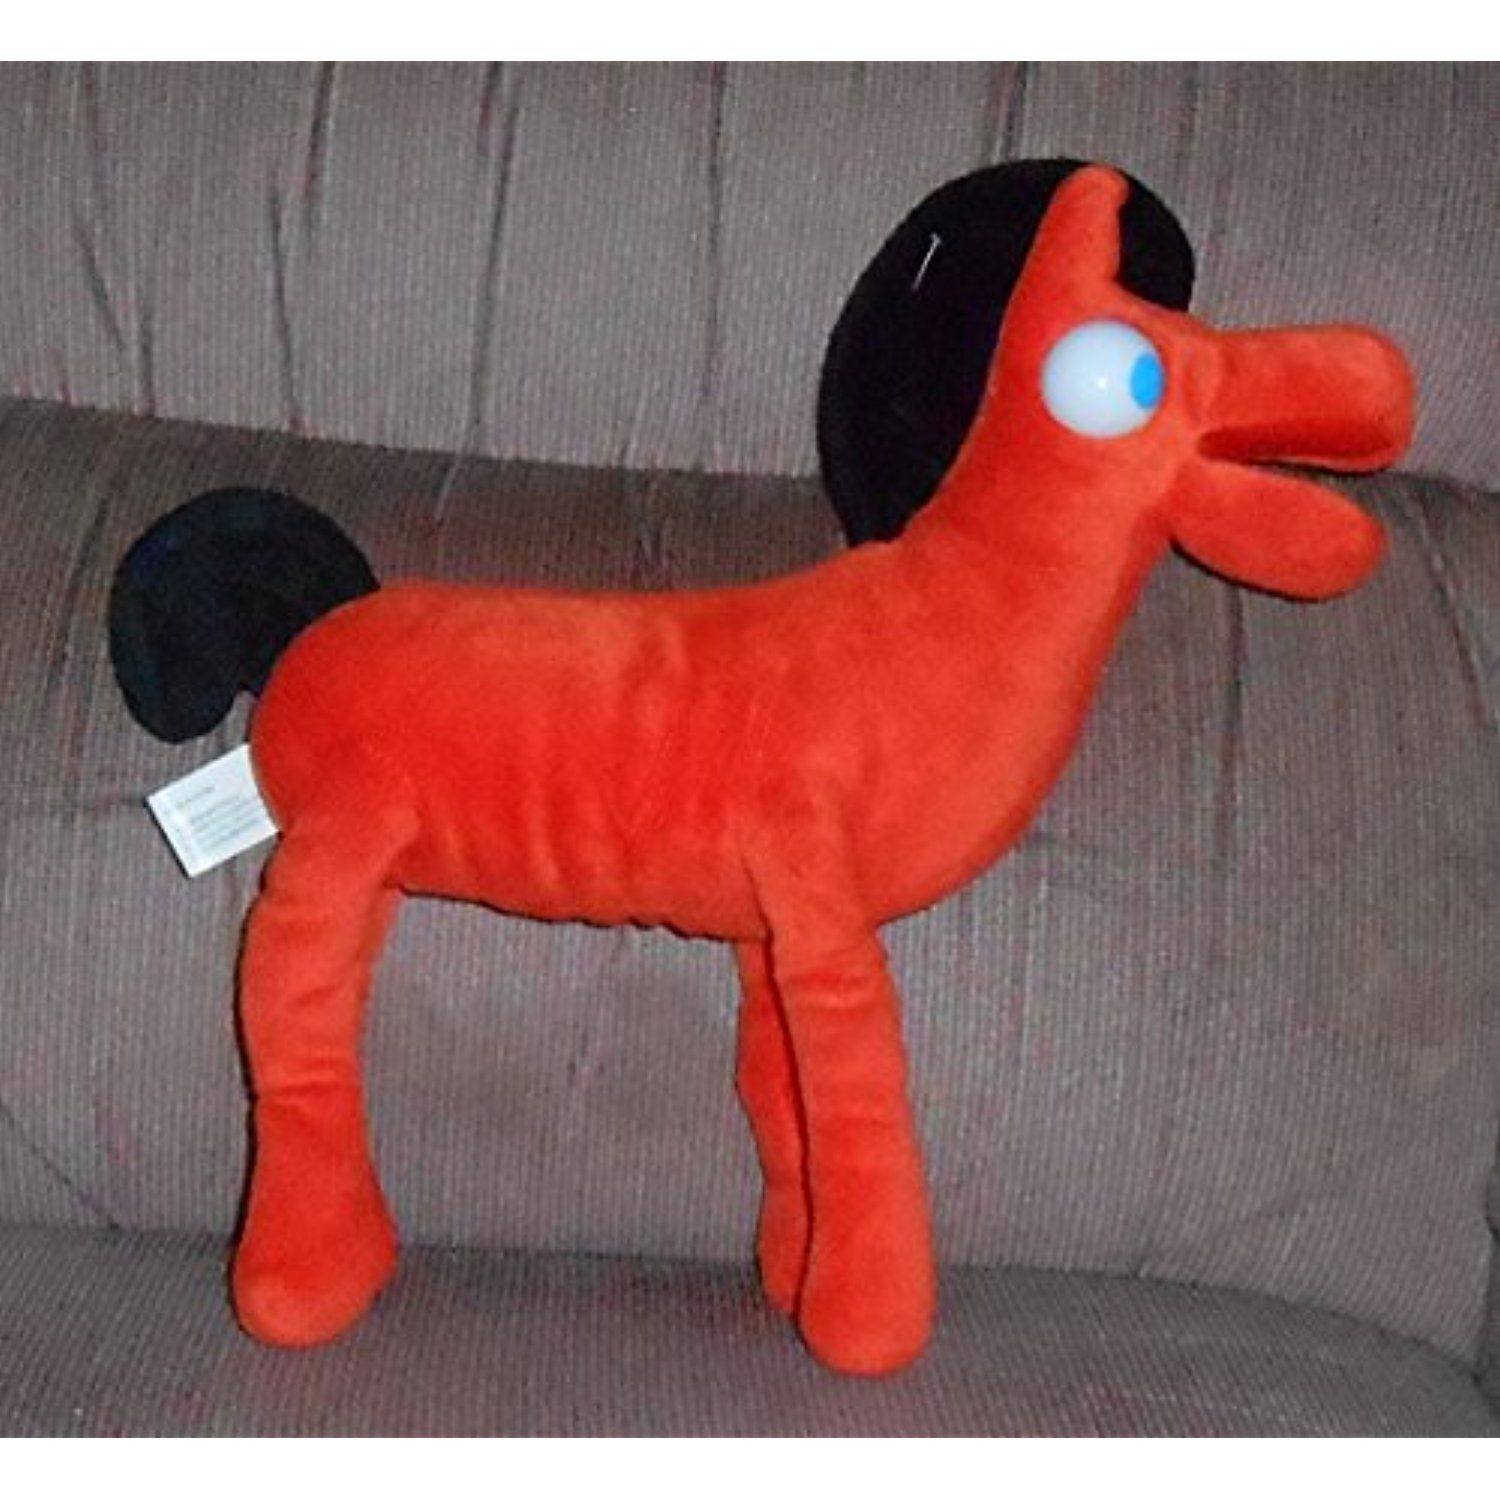 Gumby 13 Pokey Pony Plush Doll Toy Click On The Image For